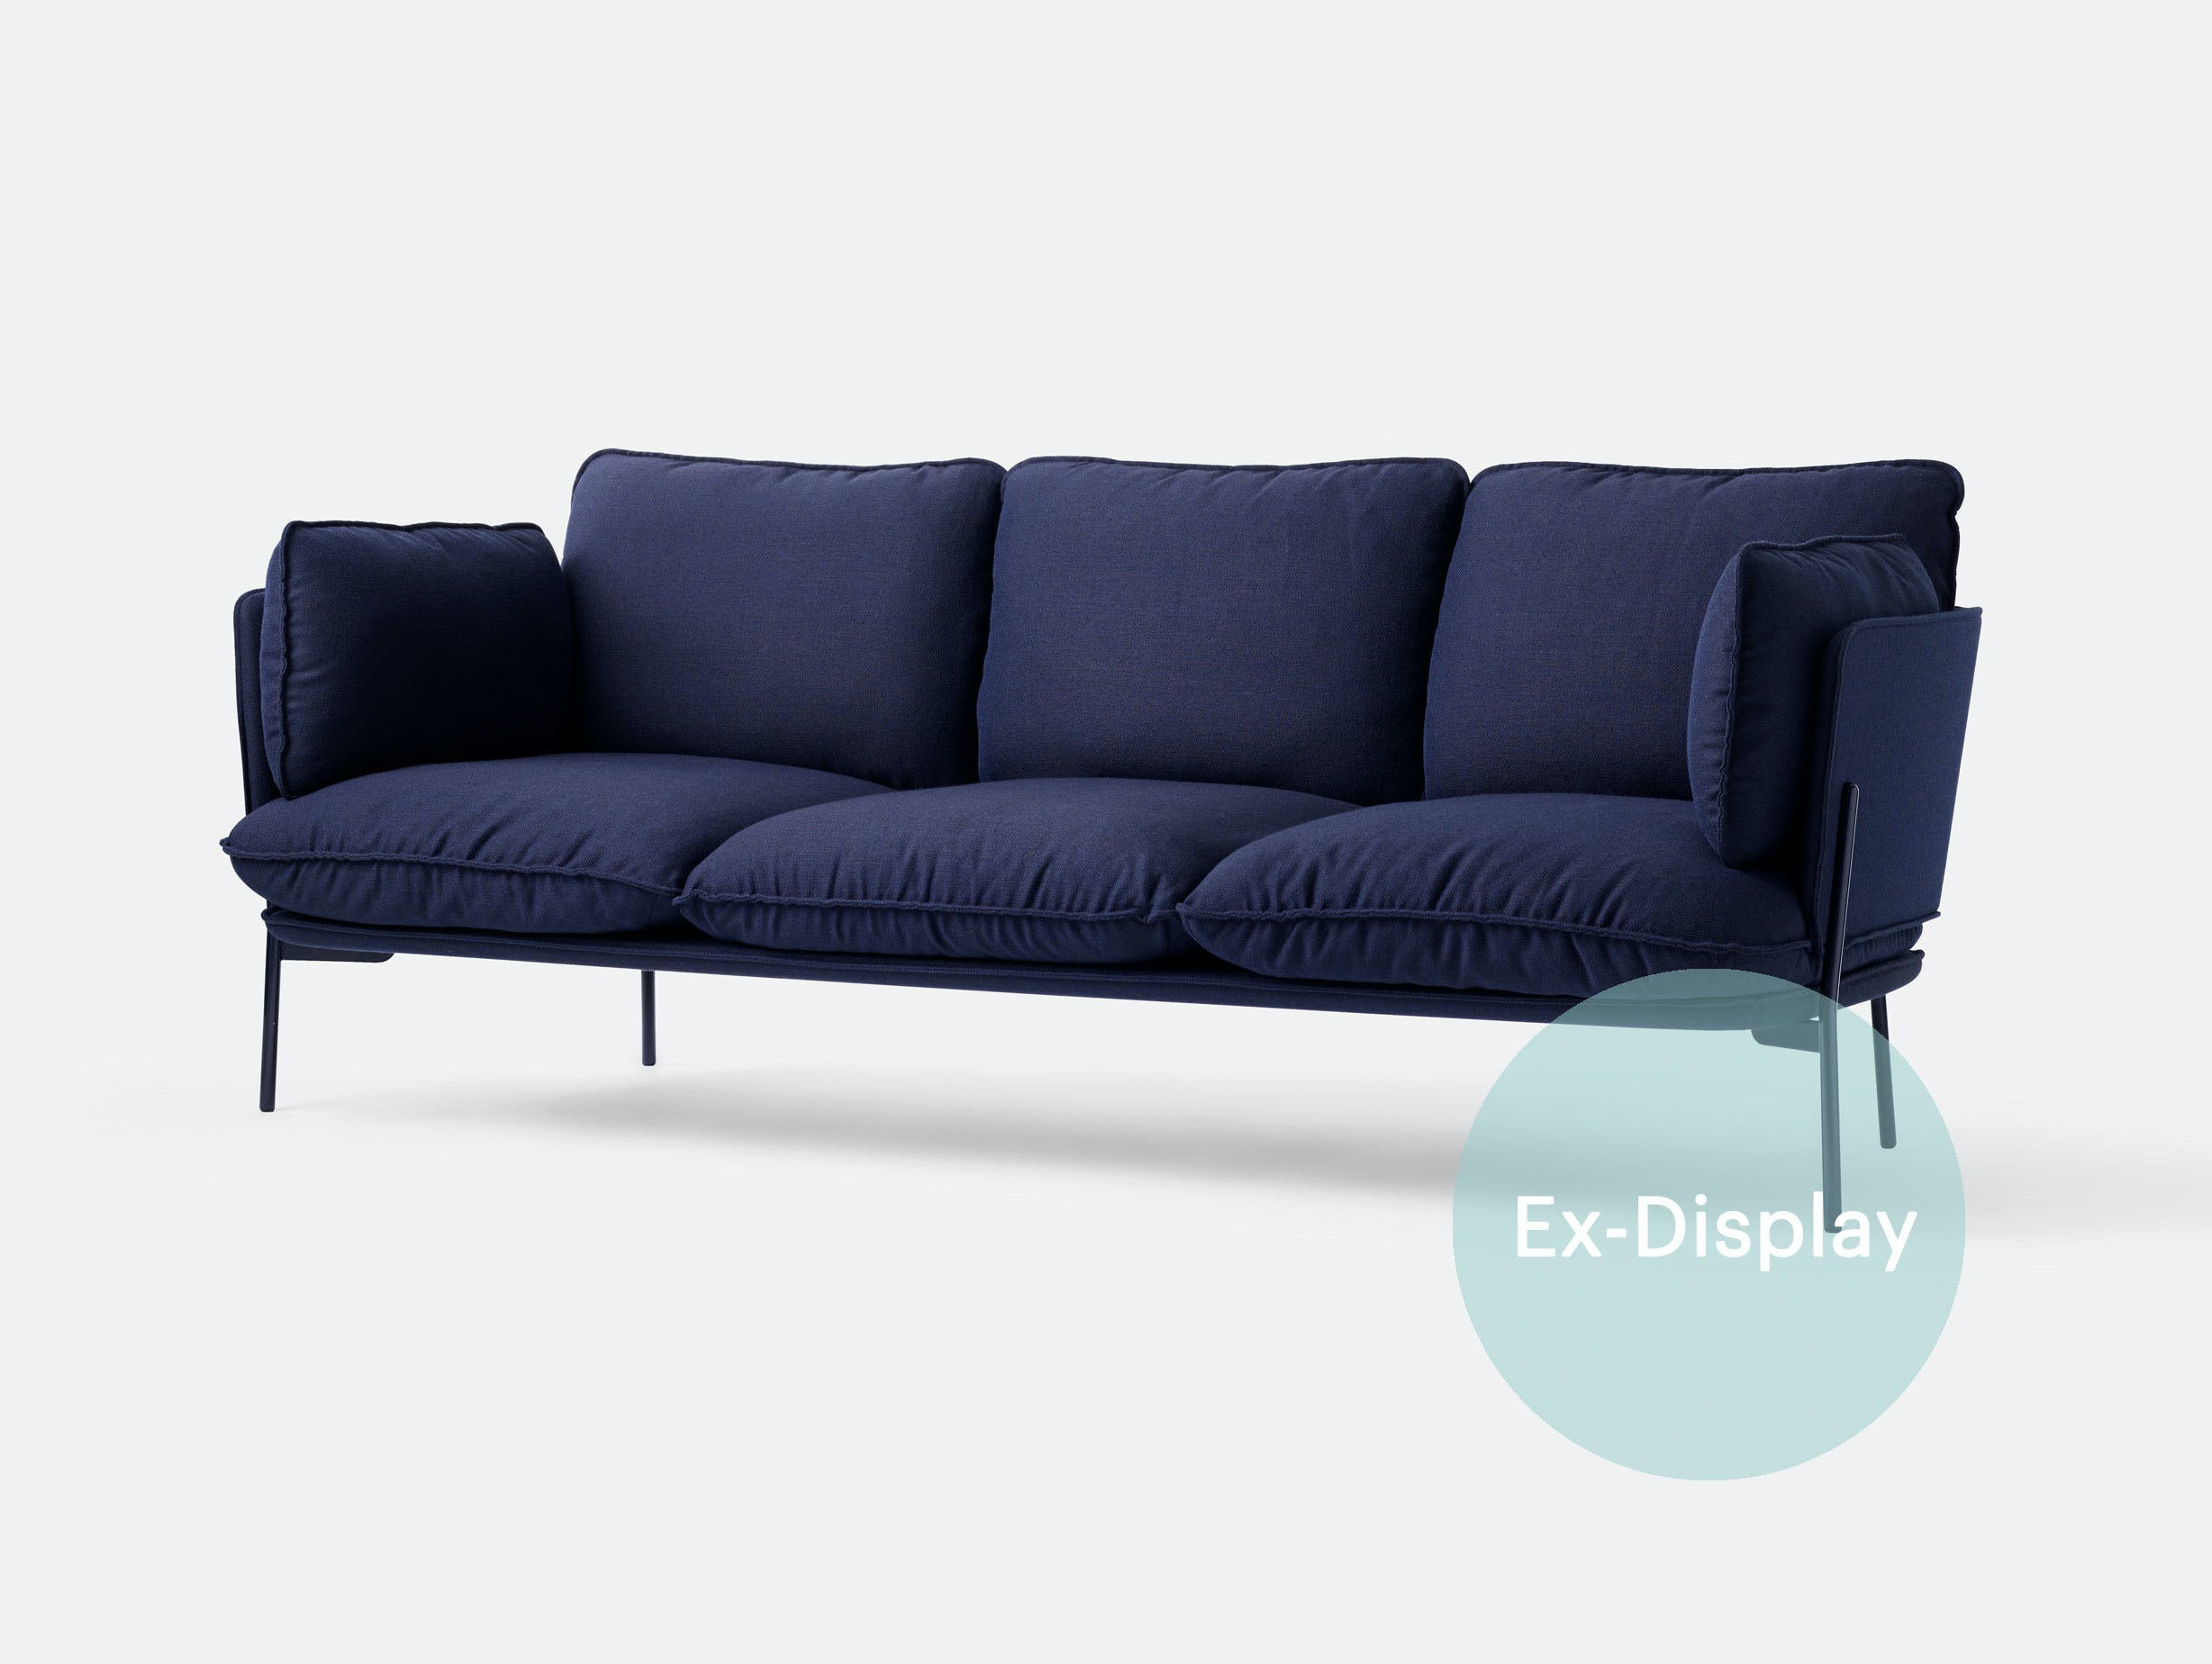 Cloud Sofa / 40% off in our Summer Sale at £3000 image